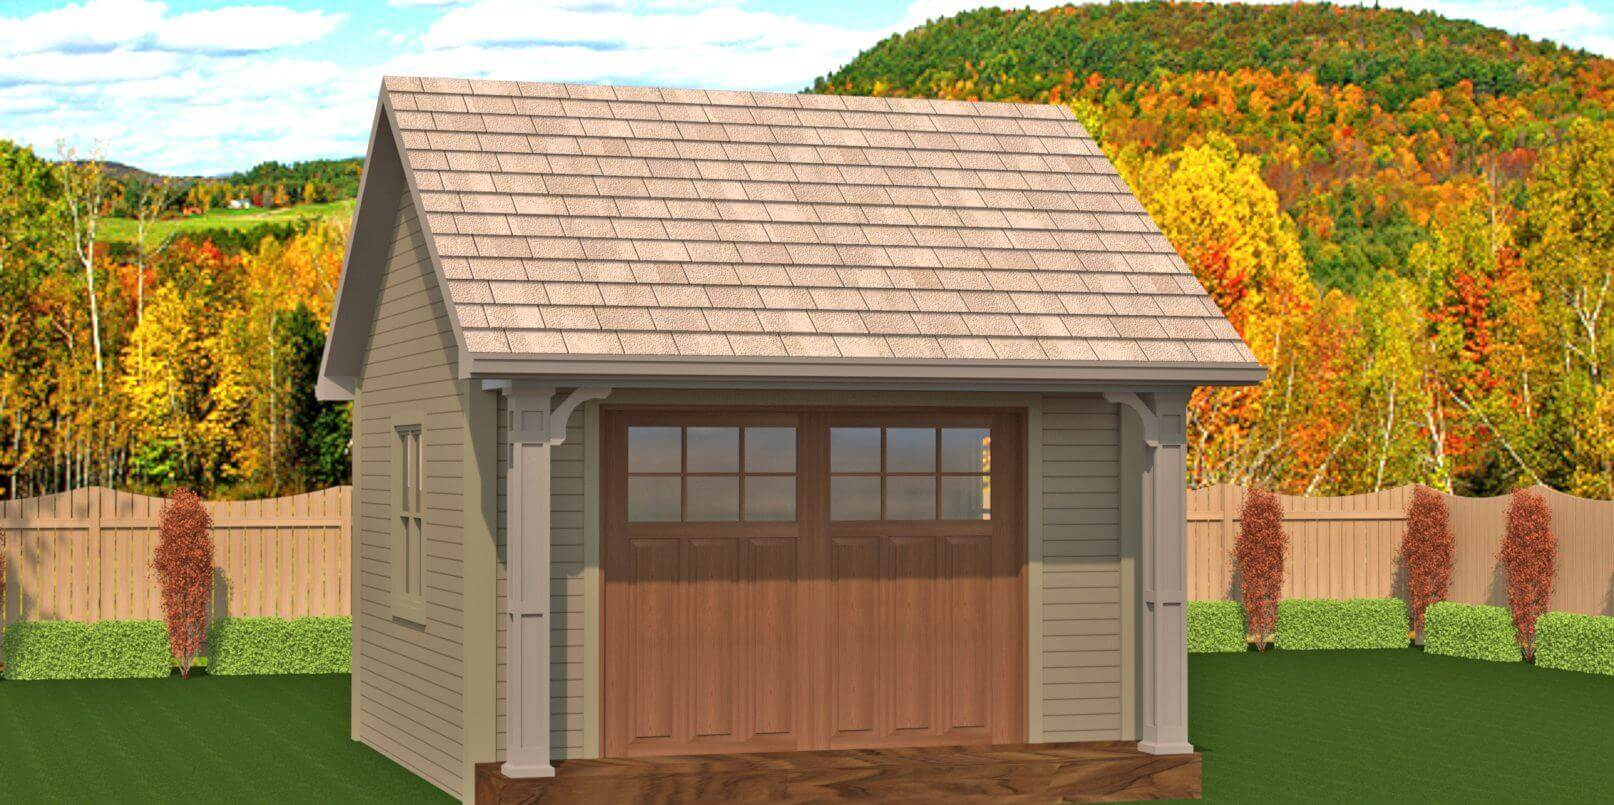 196 sq.ft. timber mart shed with sliding door